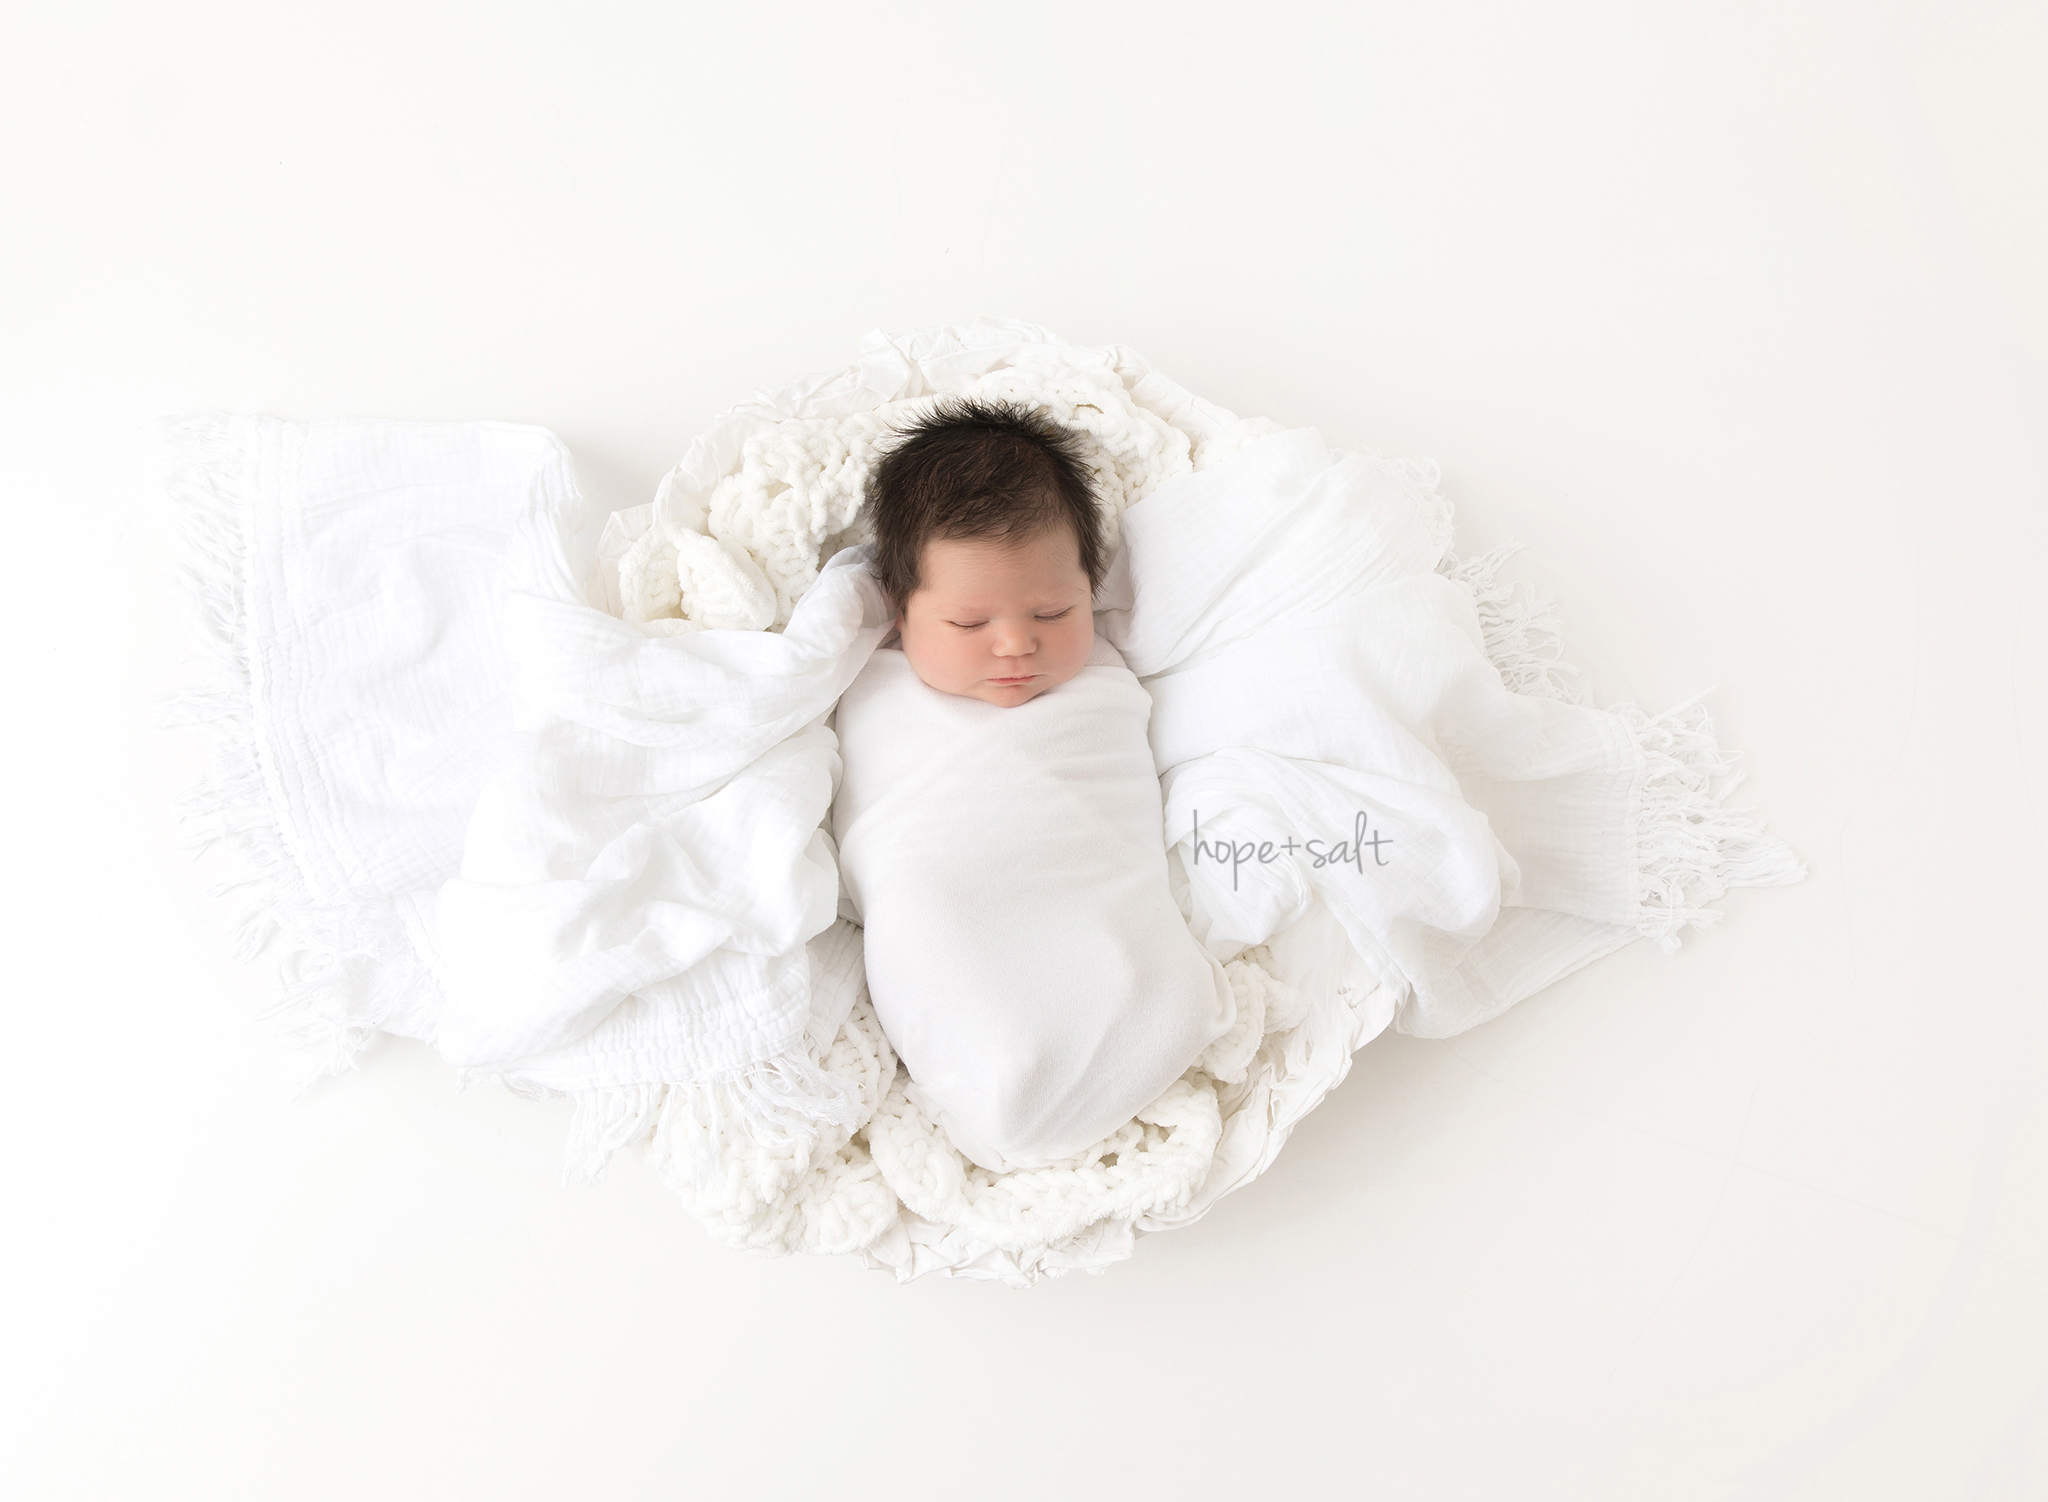 oakville newborn photographer - studio session for baby boy James big sibling sister and parents in simple natural style